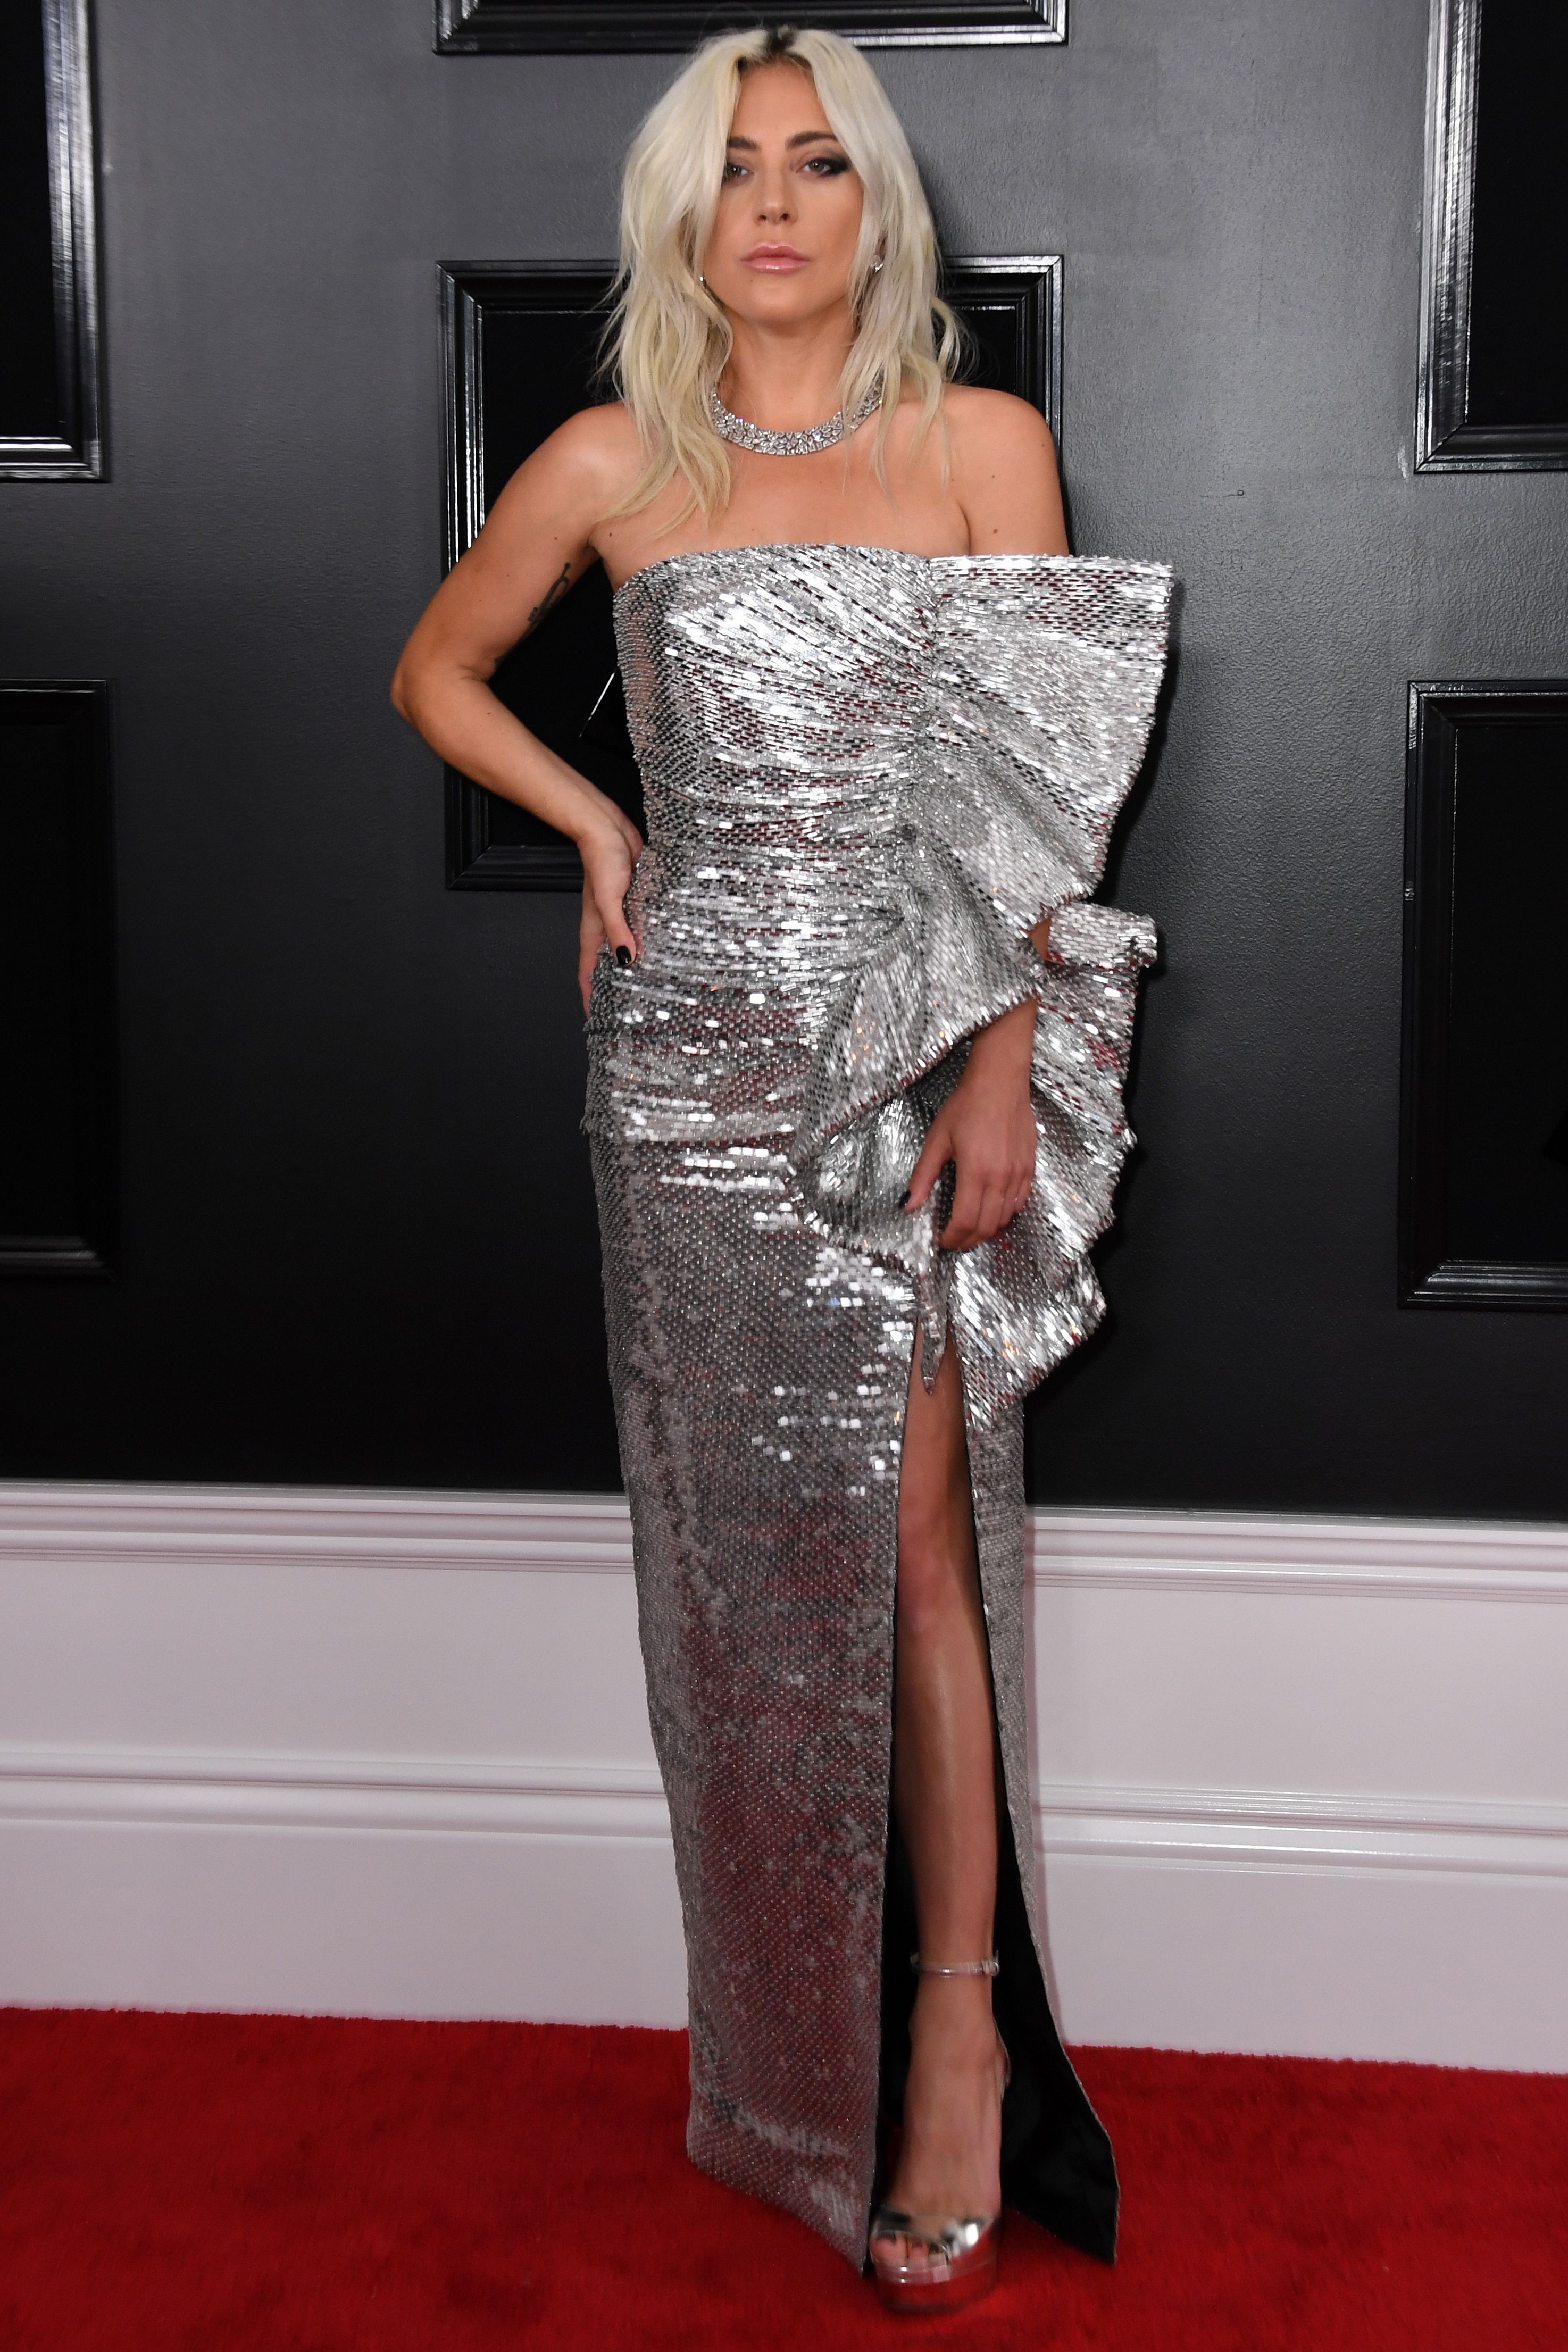 944ec6eabd4 Grammys - the best fashion from the red carpet - CNN Style